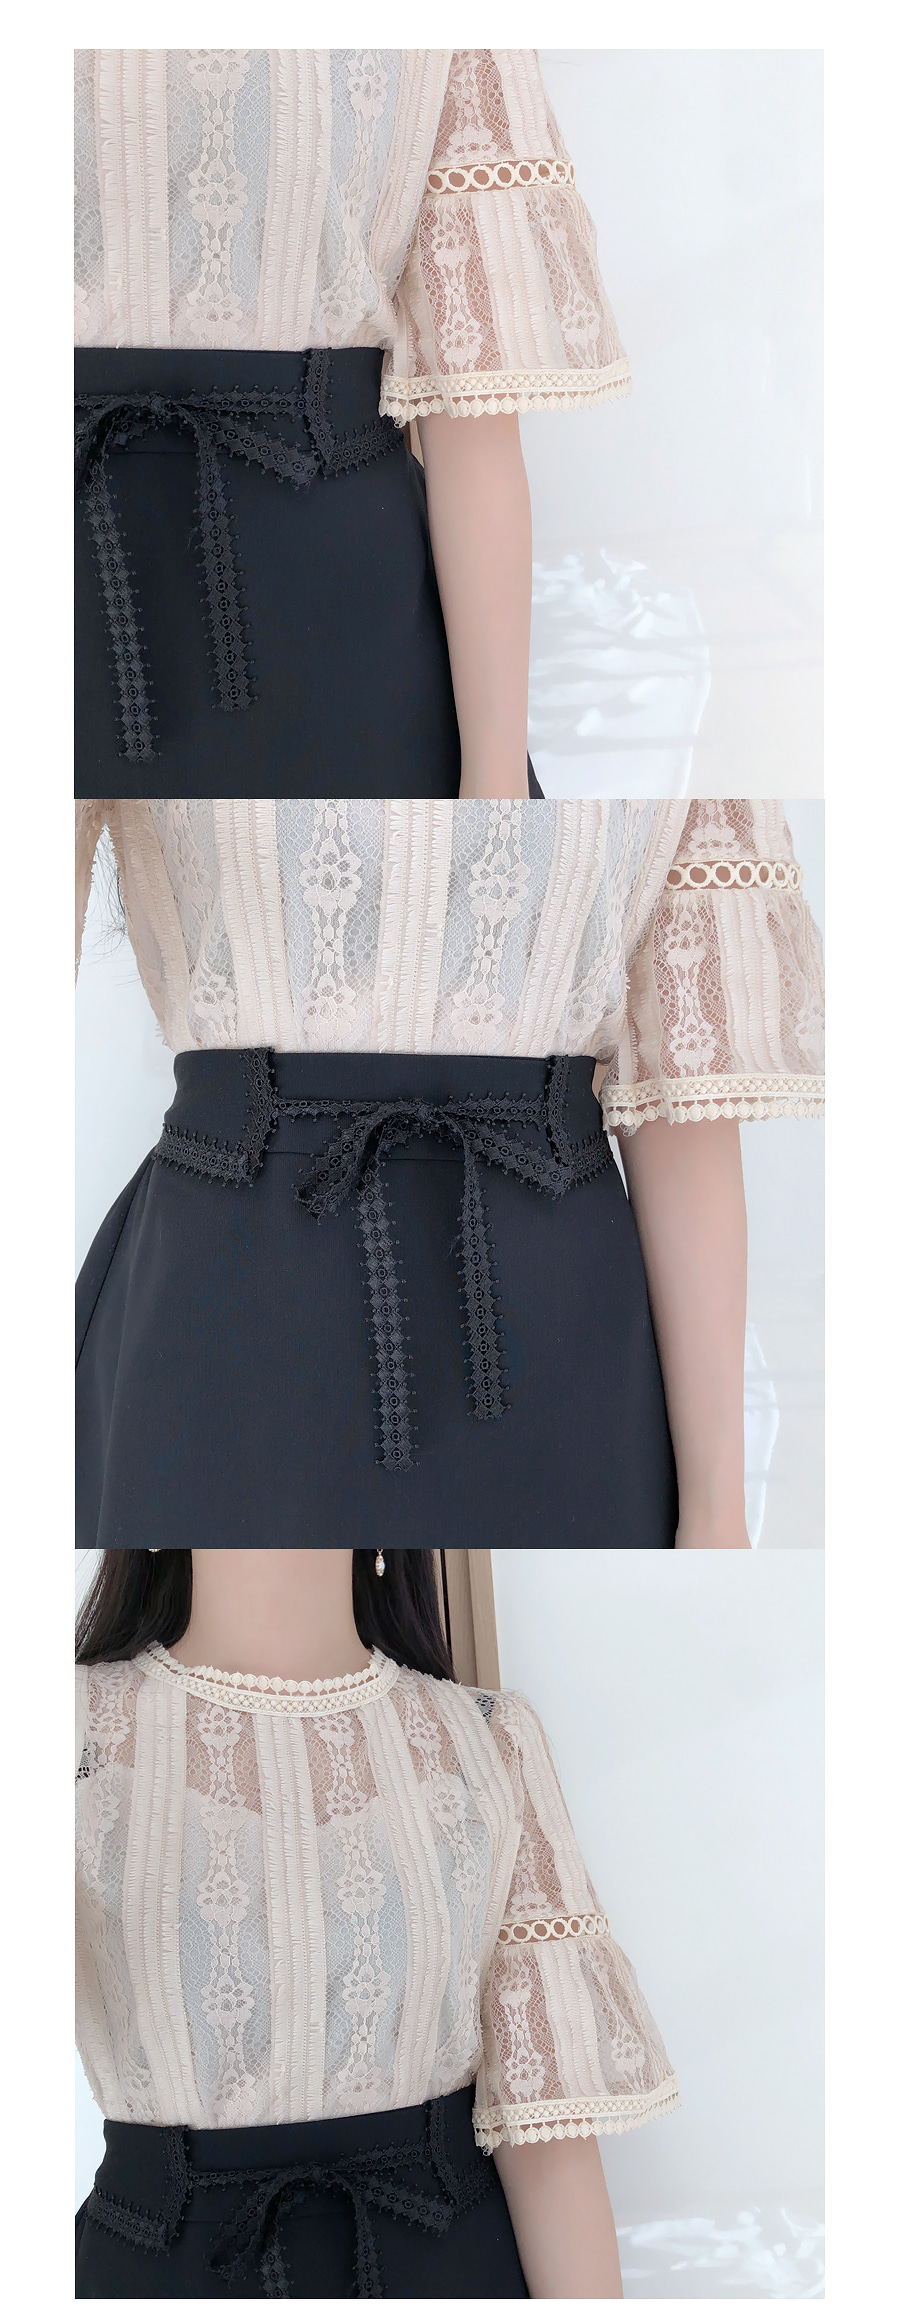 Discounts ♥ Short sleeve embroidery lace blouse